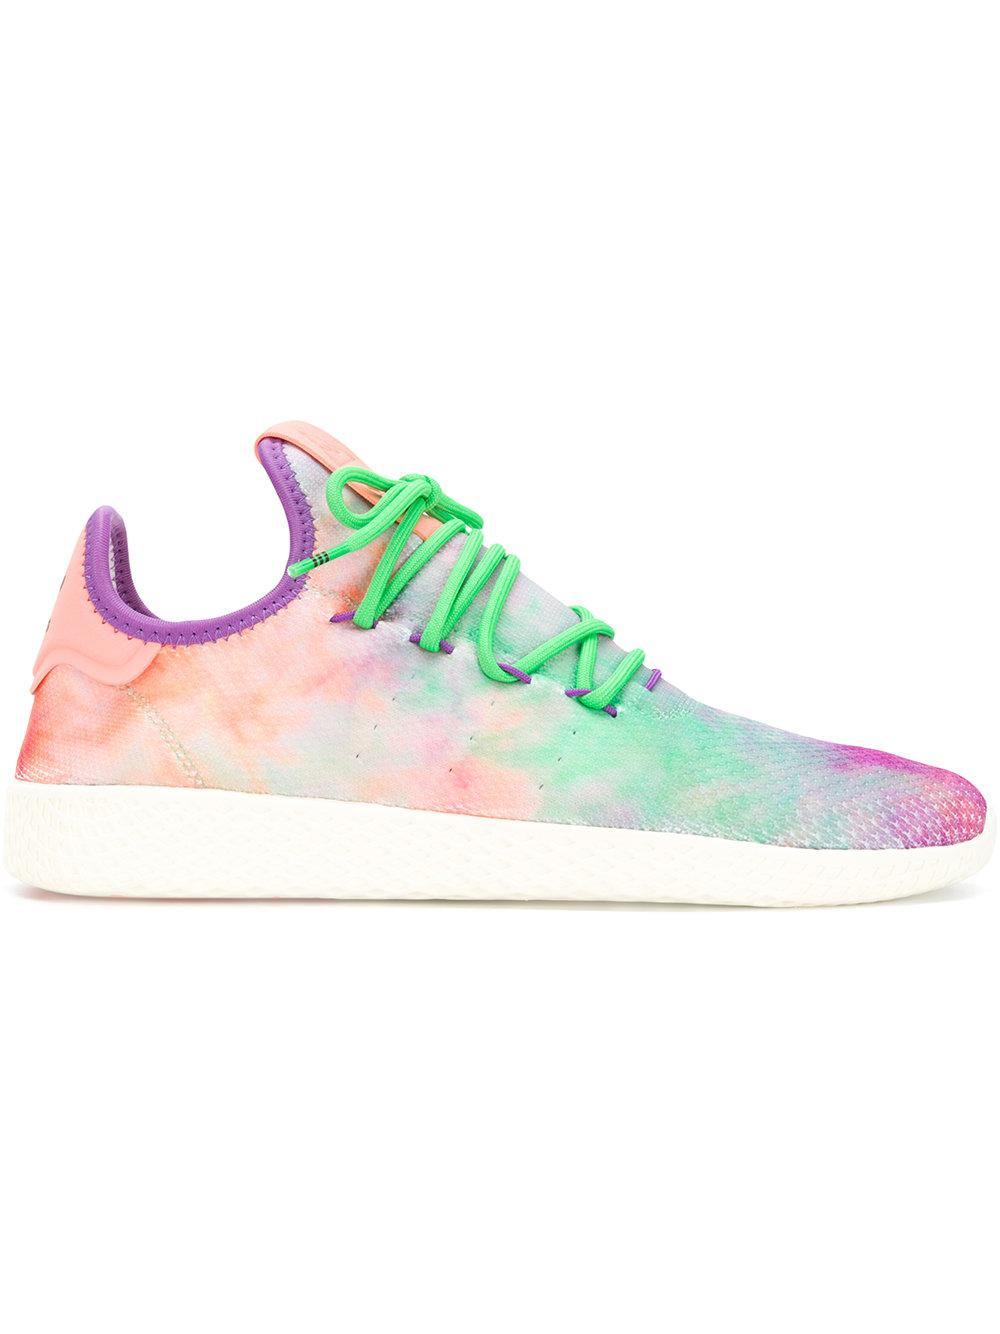 7c9f369959b23 Lyst - adidas Originals Pharrell Williams Hu Holi Tennis Hu Mc ...